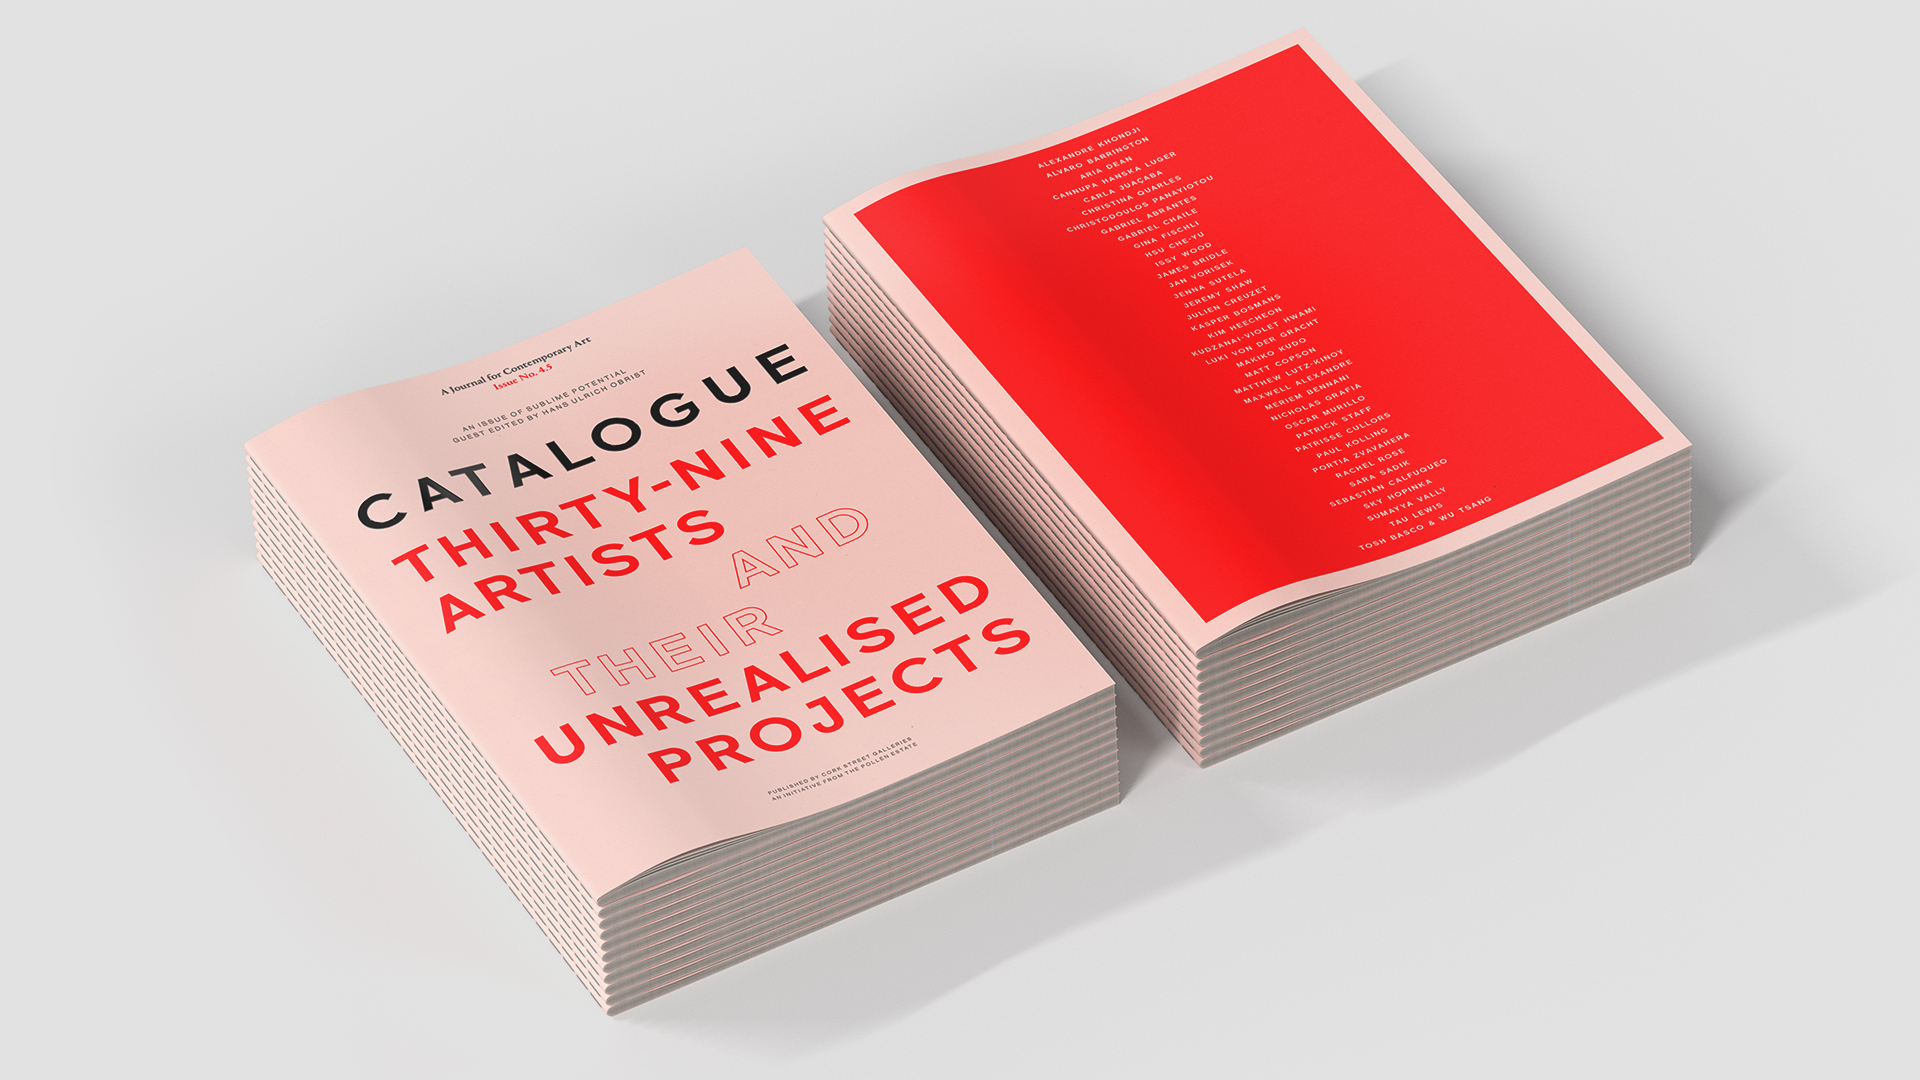 CATALOGUE 4.5 guest edited by Hans Ulrich Obrist is out now. Discover and download.